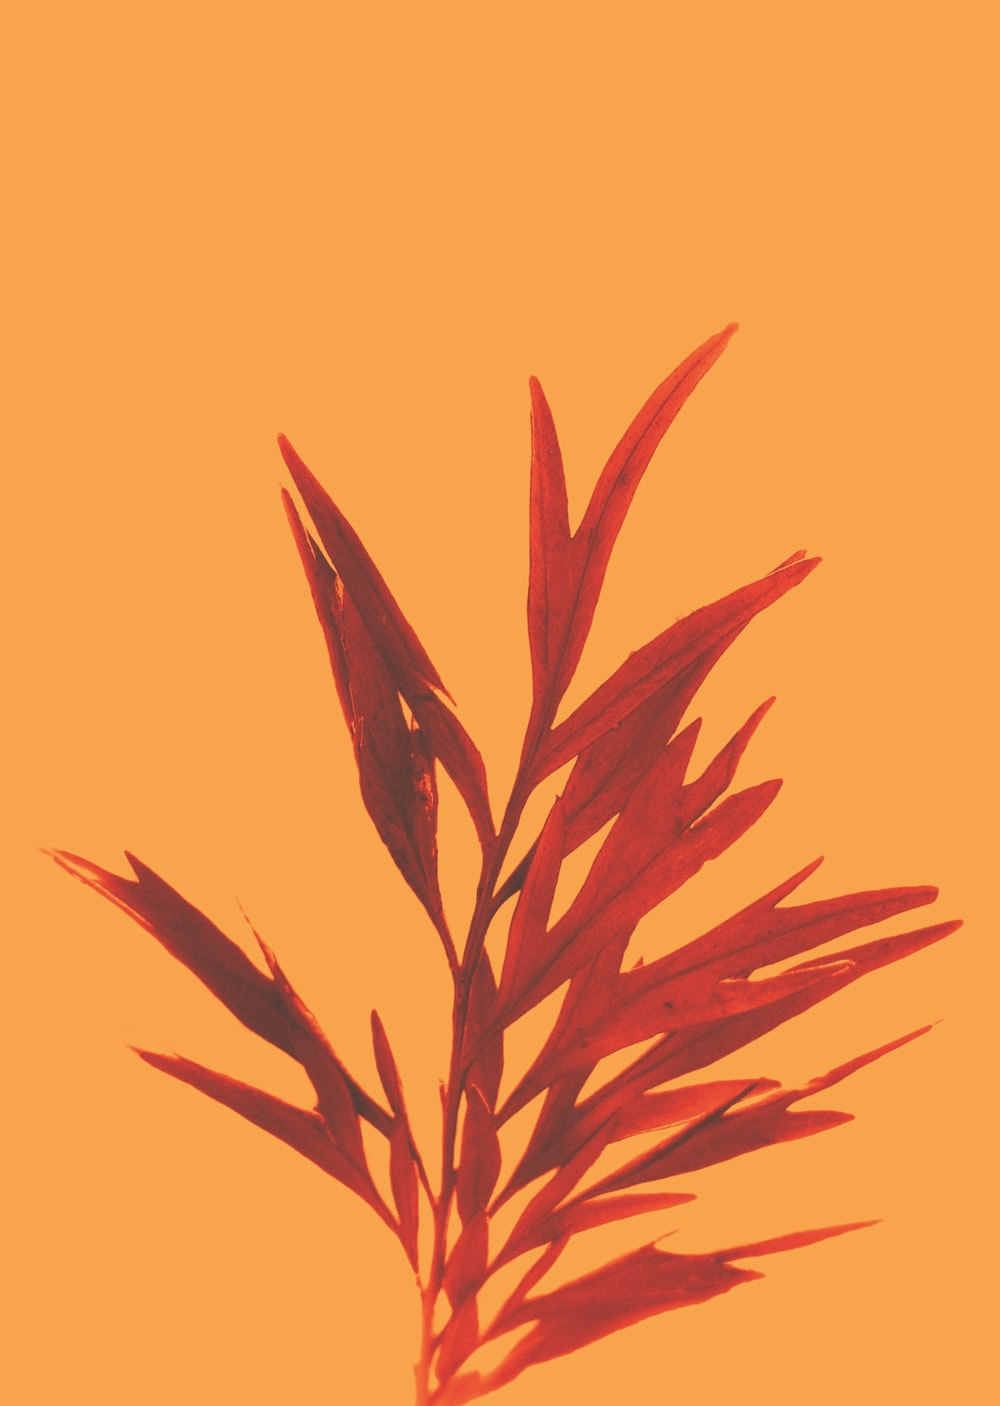 red leaf plant in yellow background